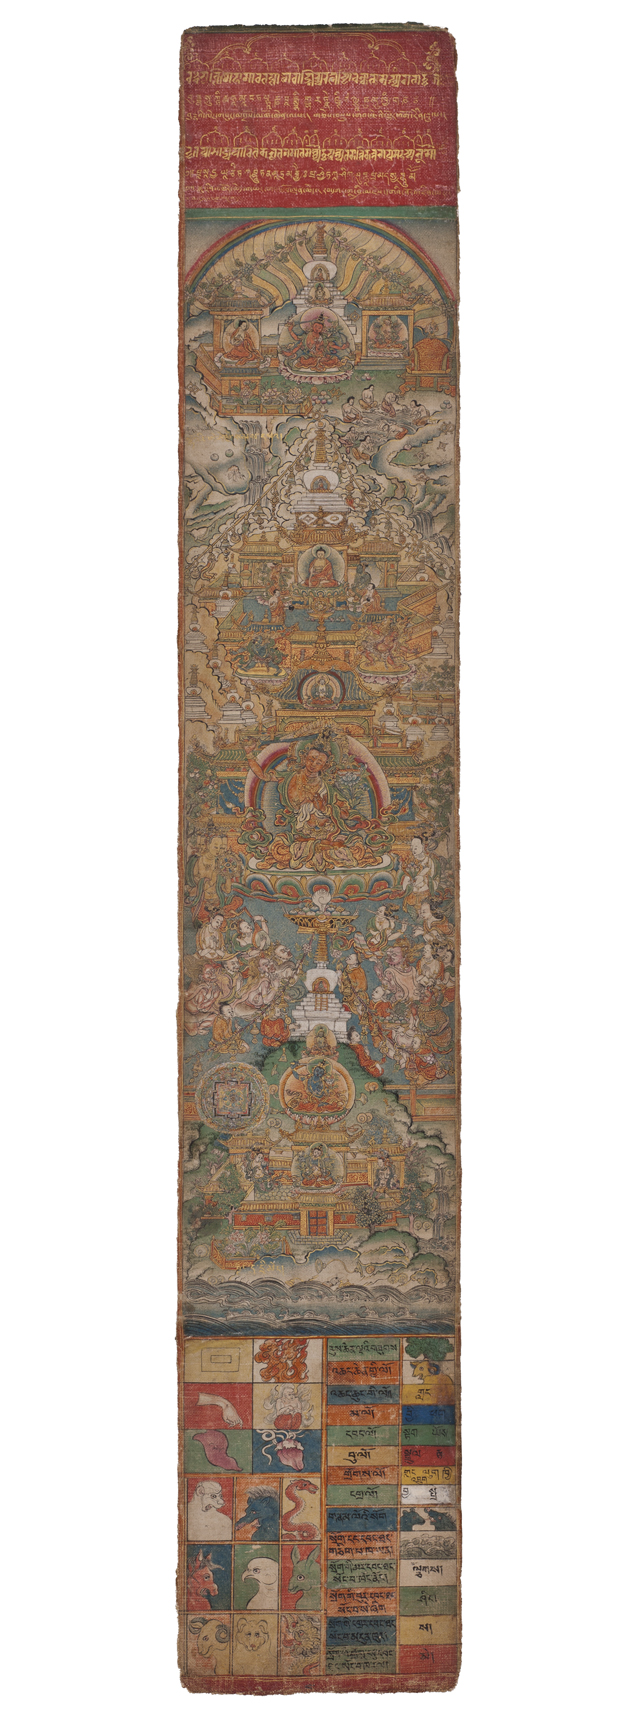 'White Beryl,' Sakya, Tibet (mid-18th century), painted by Sonam Peljor (courtesy Rubin Museum of Art)